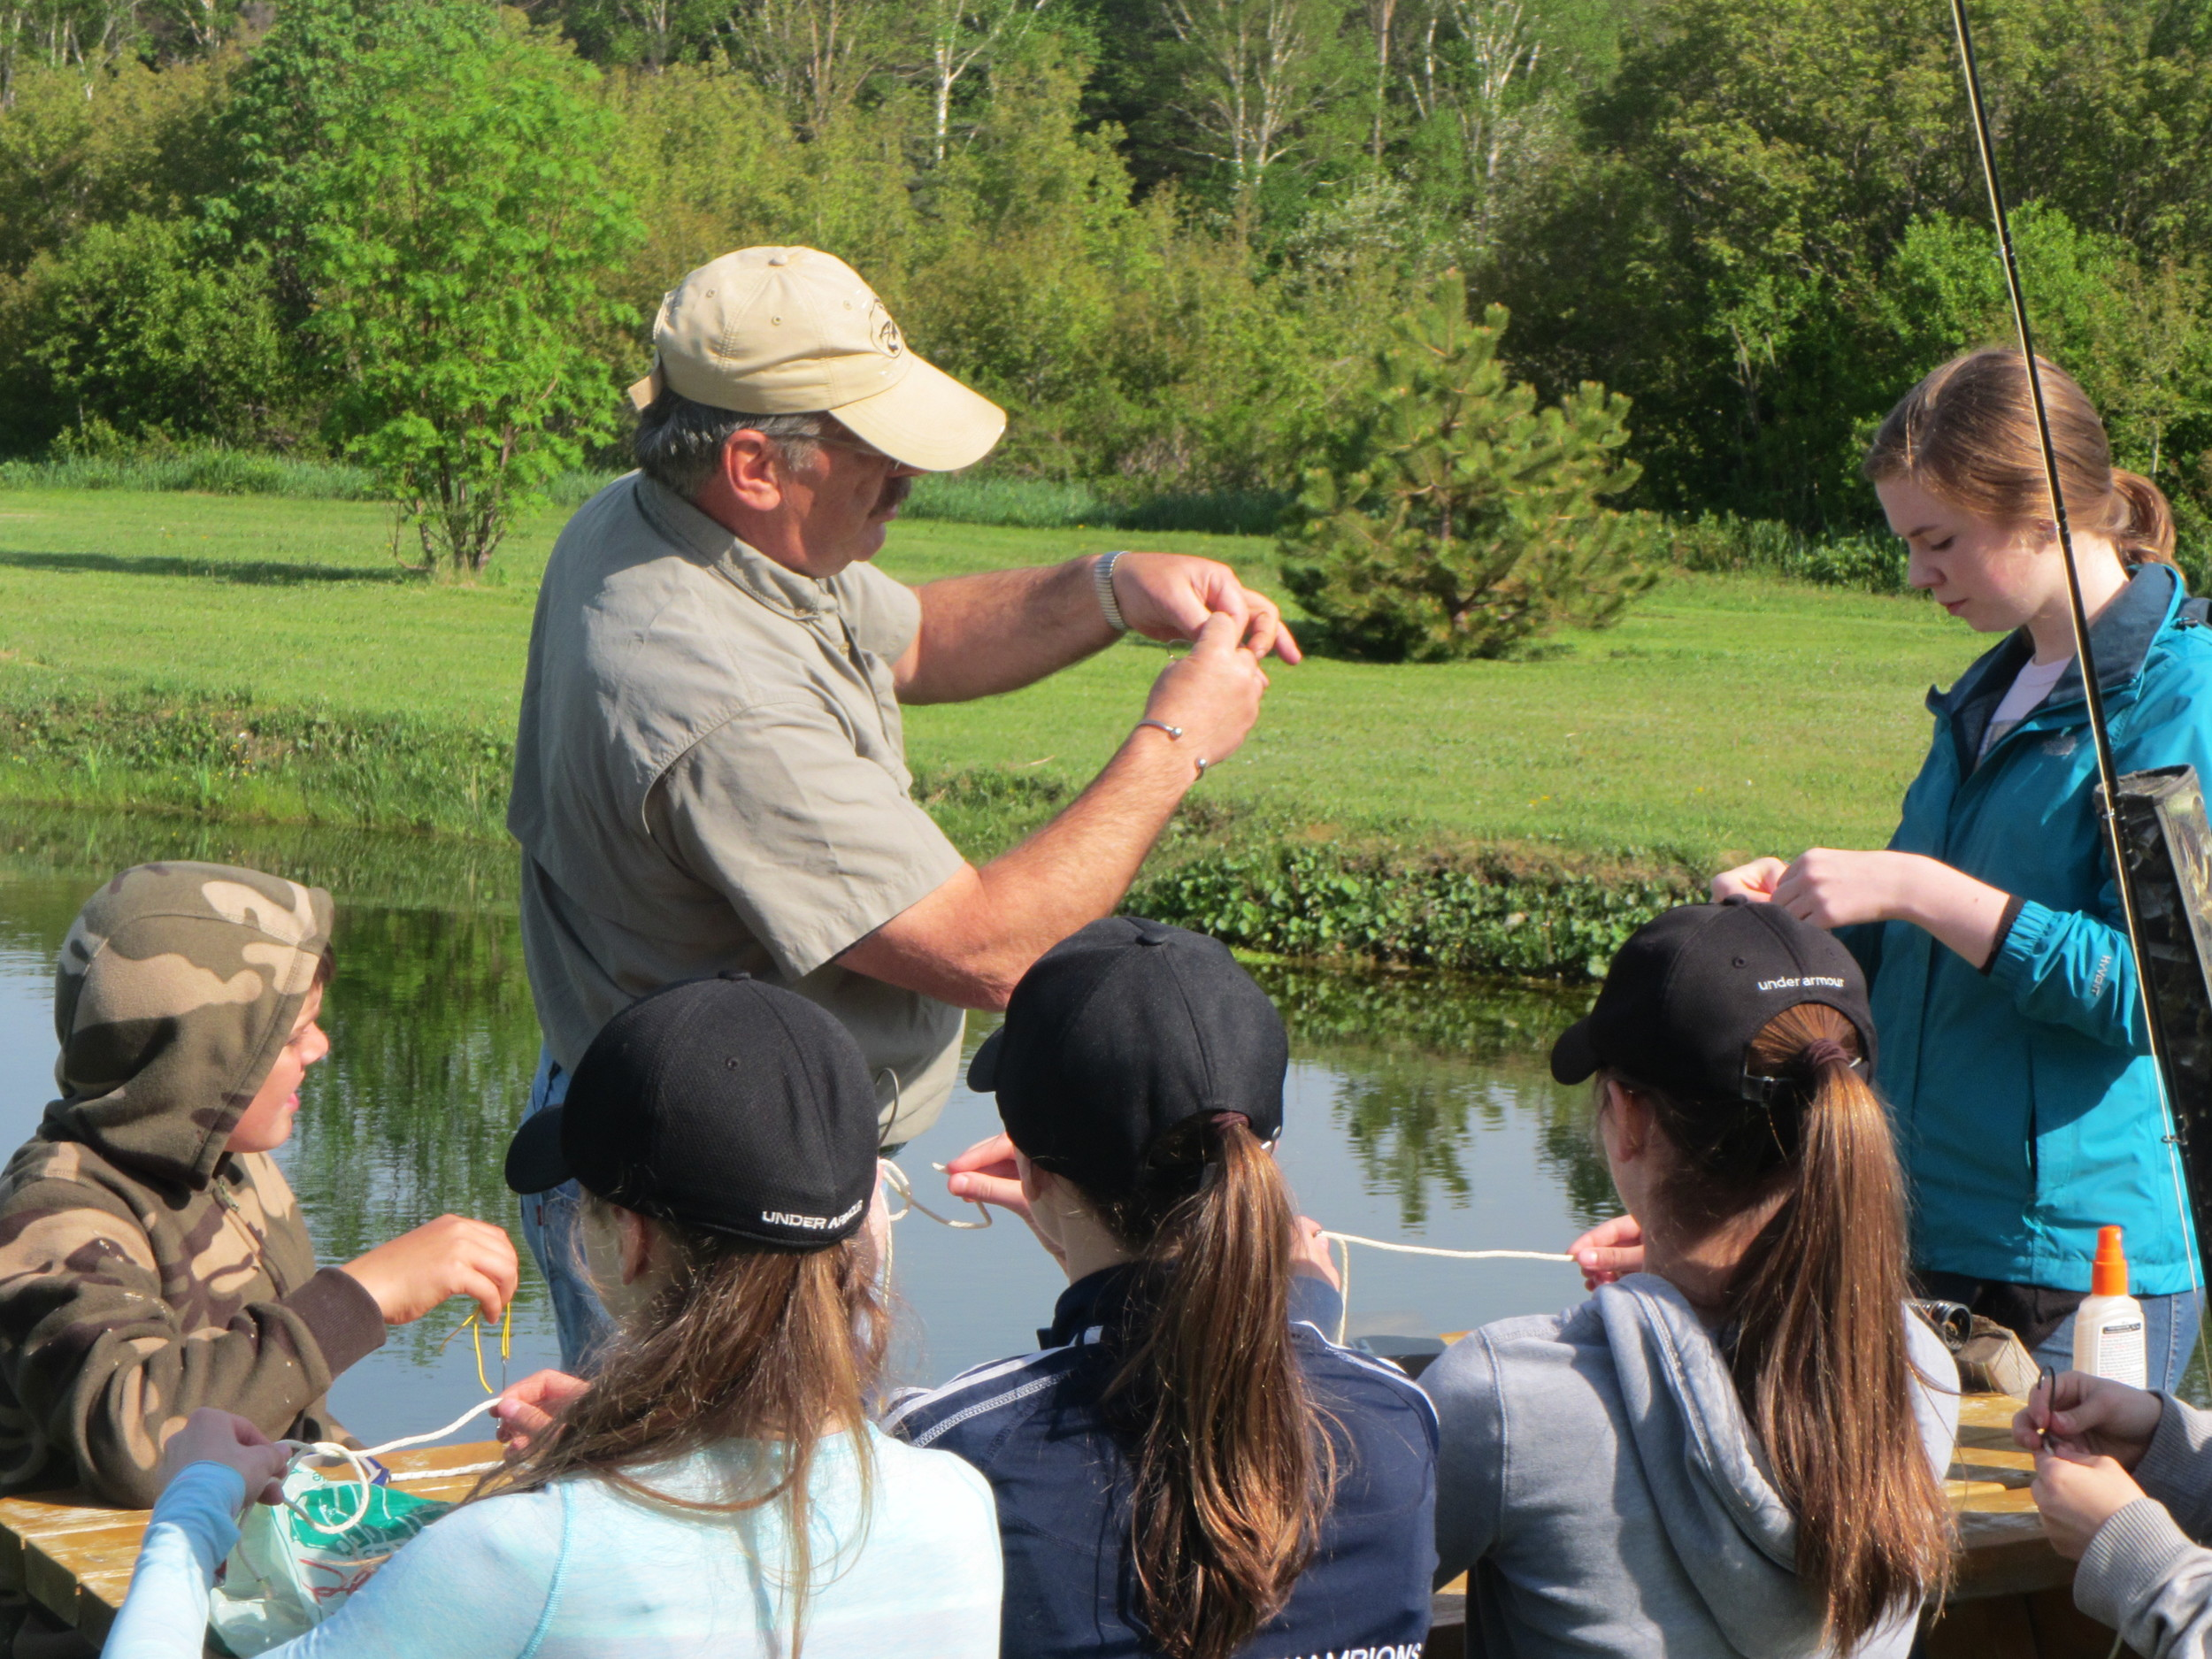 John shows the grade 7 class how to tie some simple fly knots.